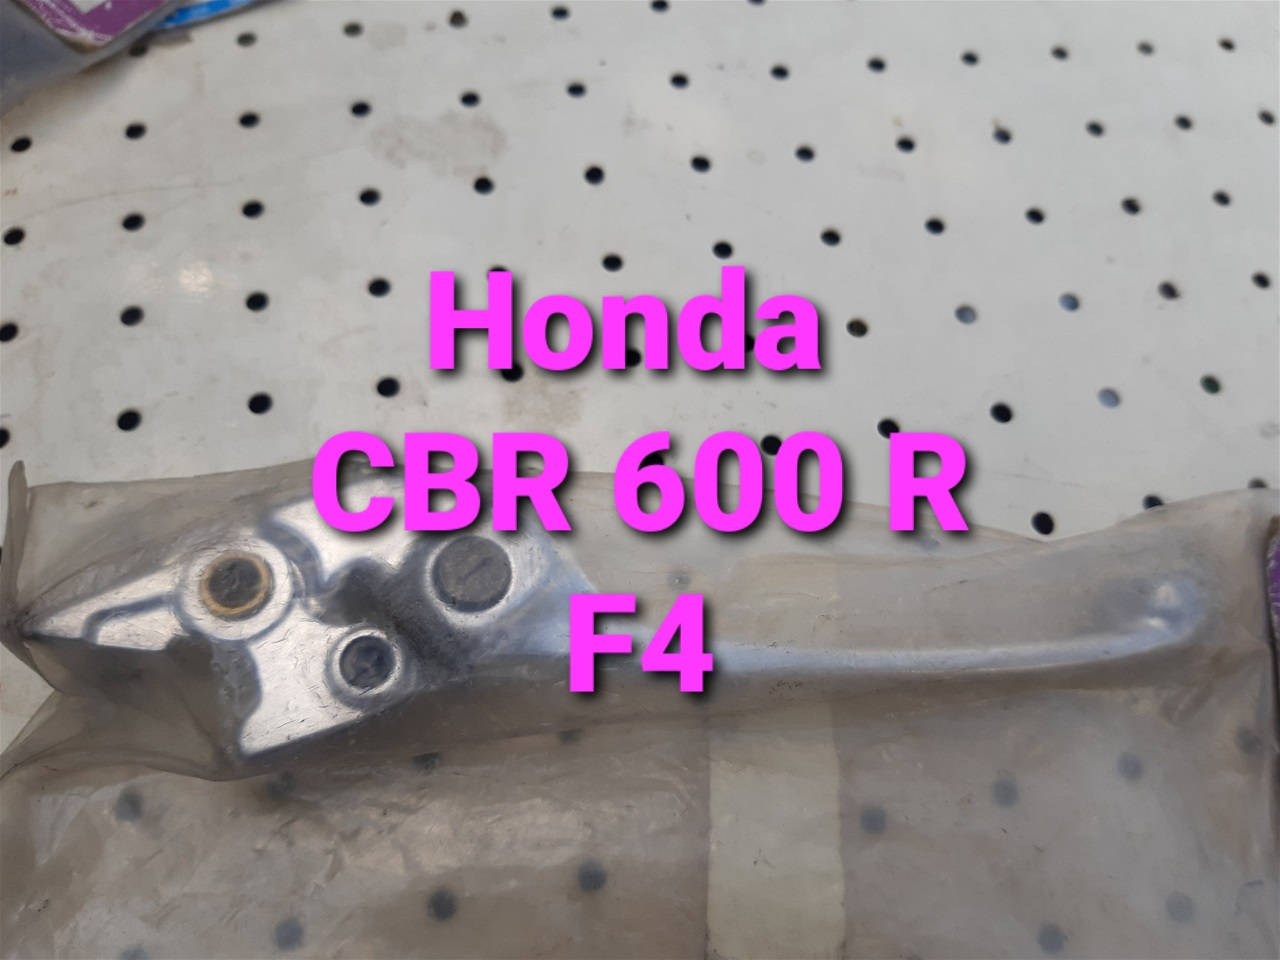 Brake & clutch lever and spares